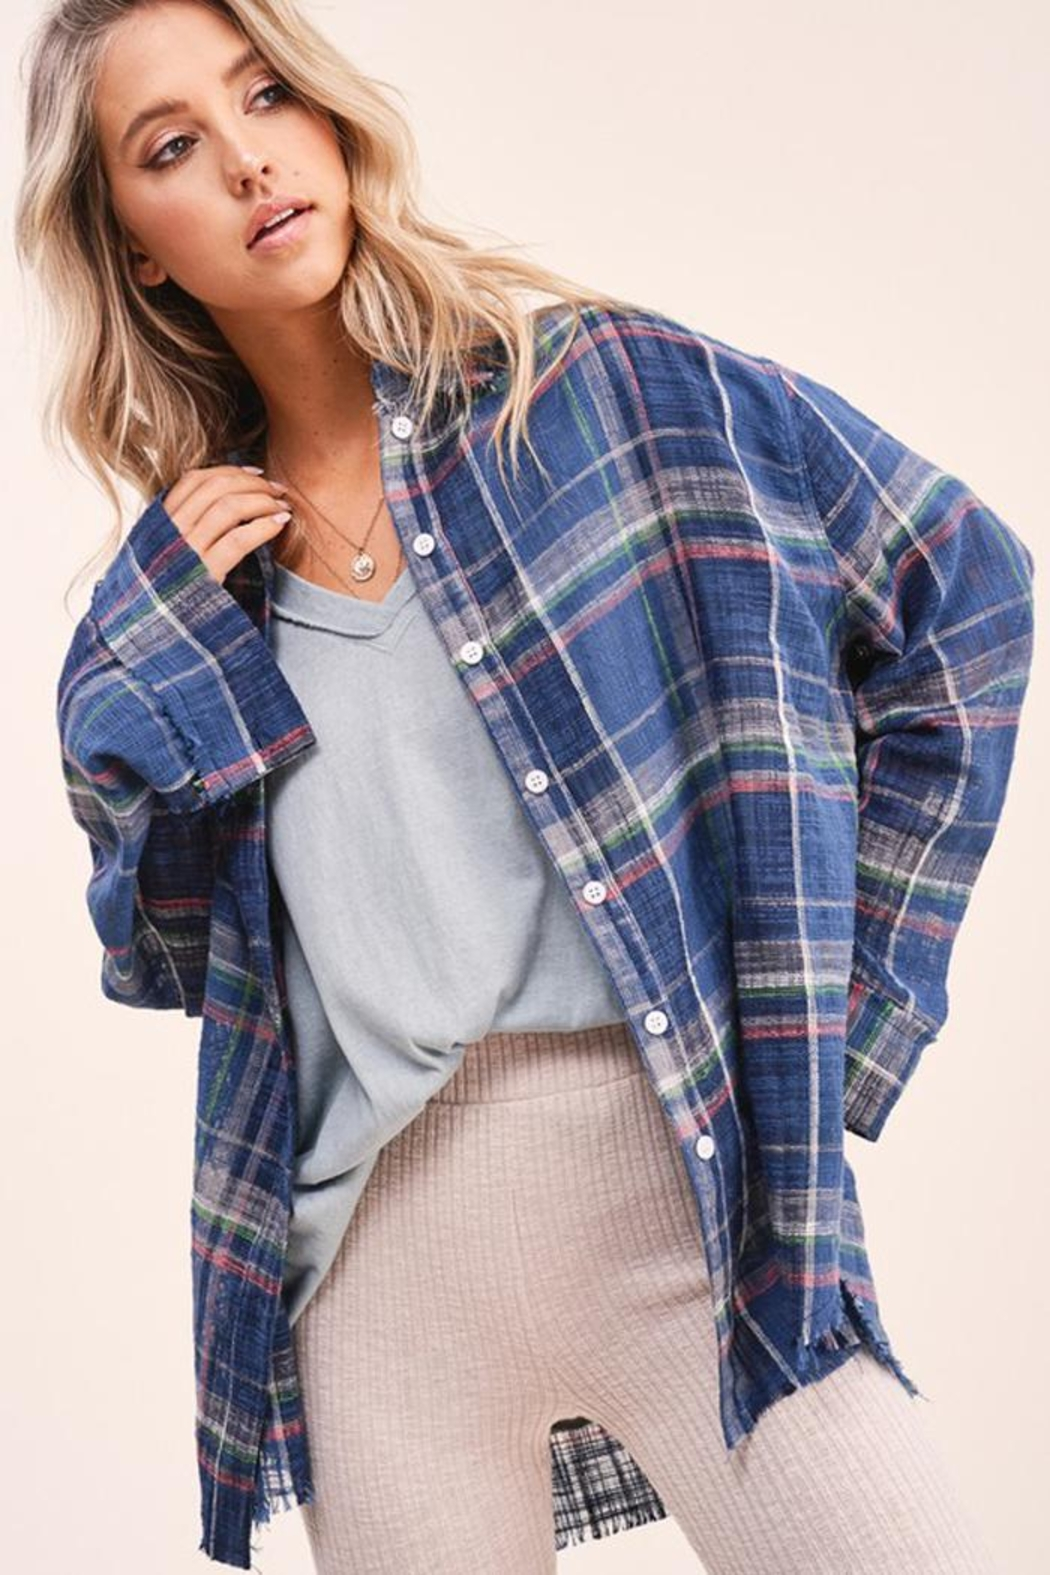 LA MIEL  Plaid Linen Touch Cotton Shirt With Raw Cut Detailing - Main Image